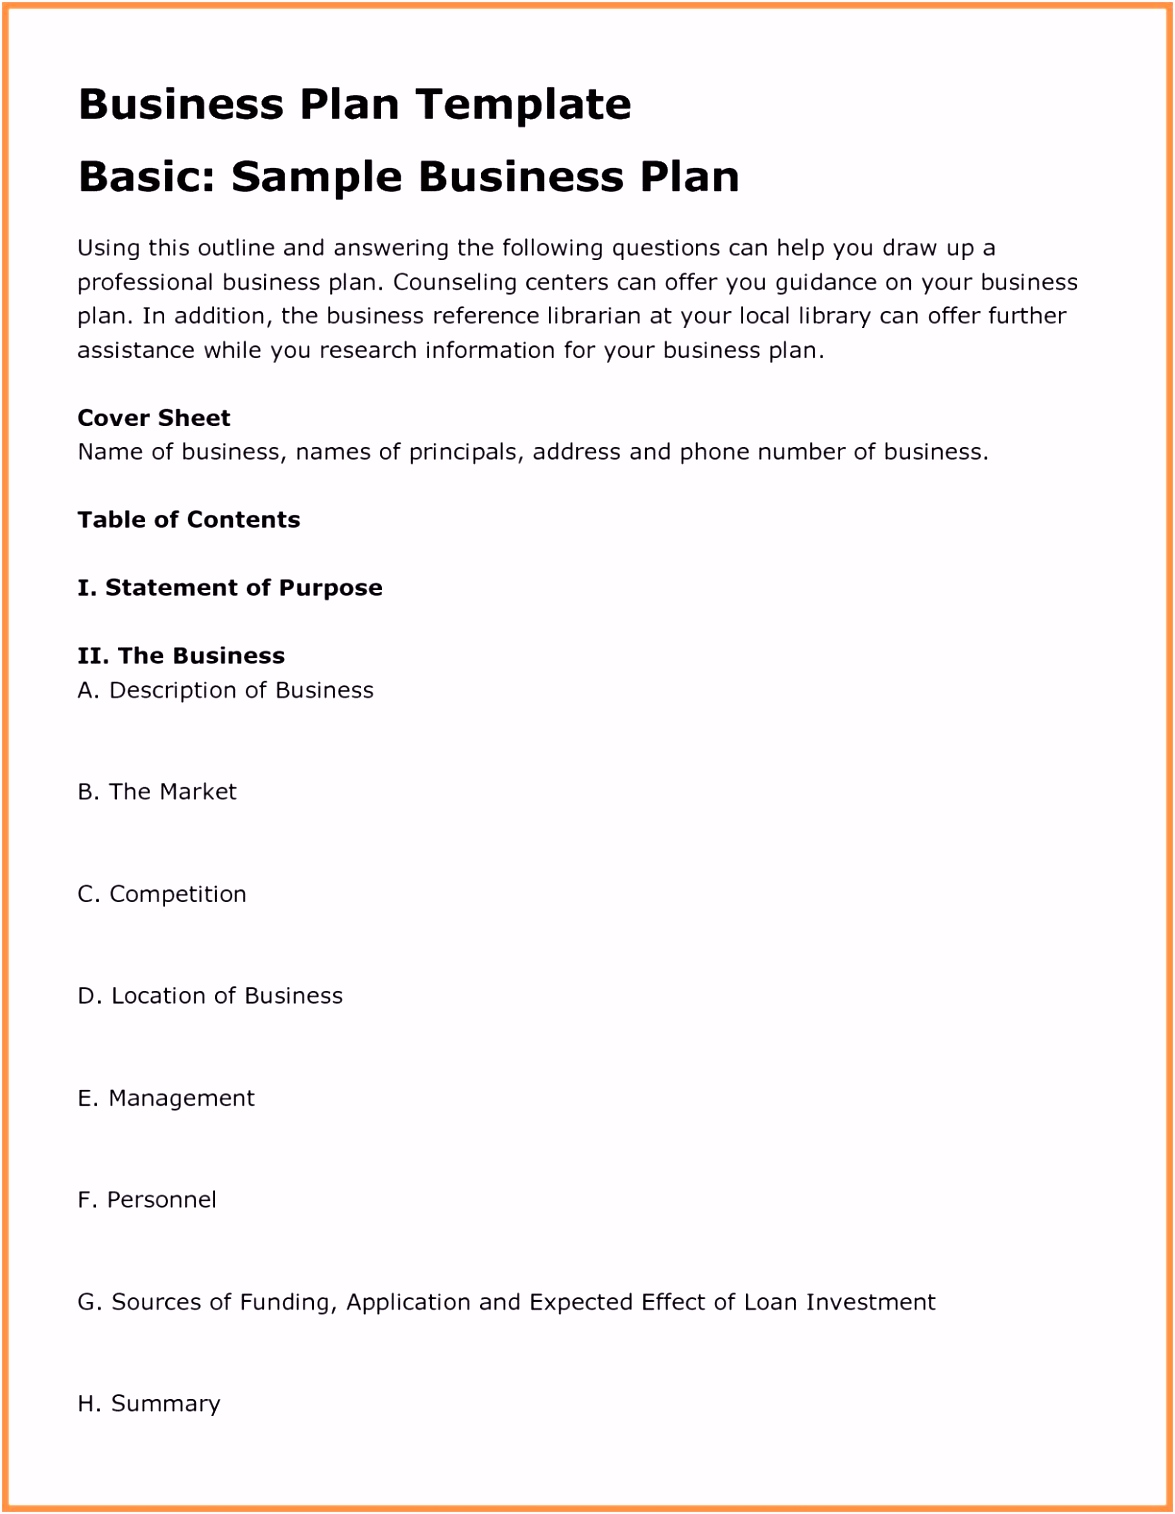 Frisches Businessplan Vorlage Pdf